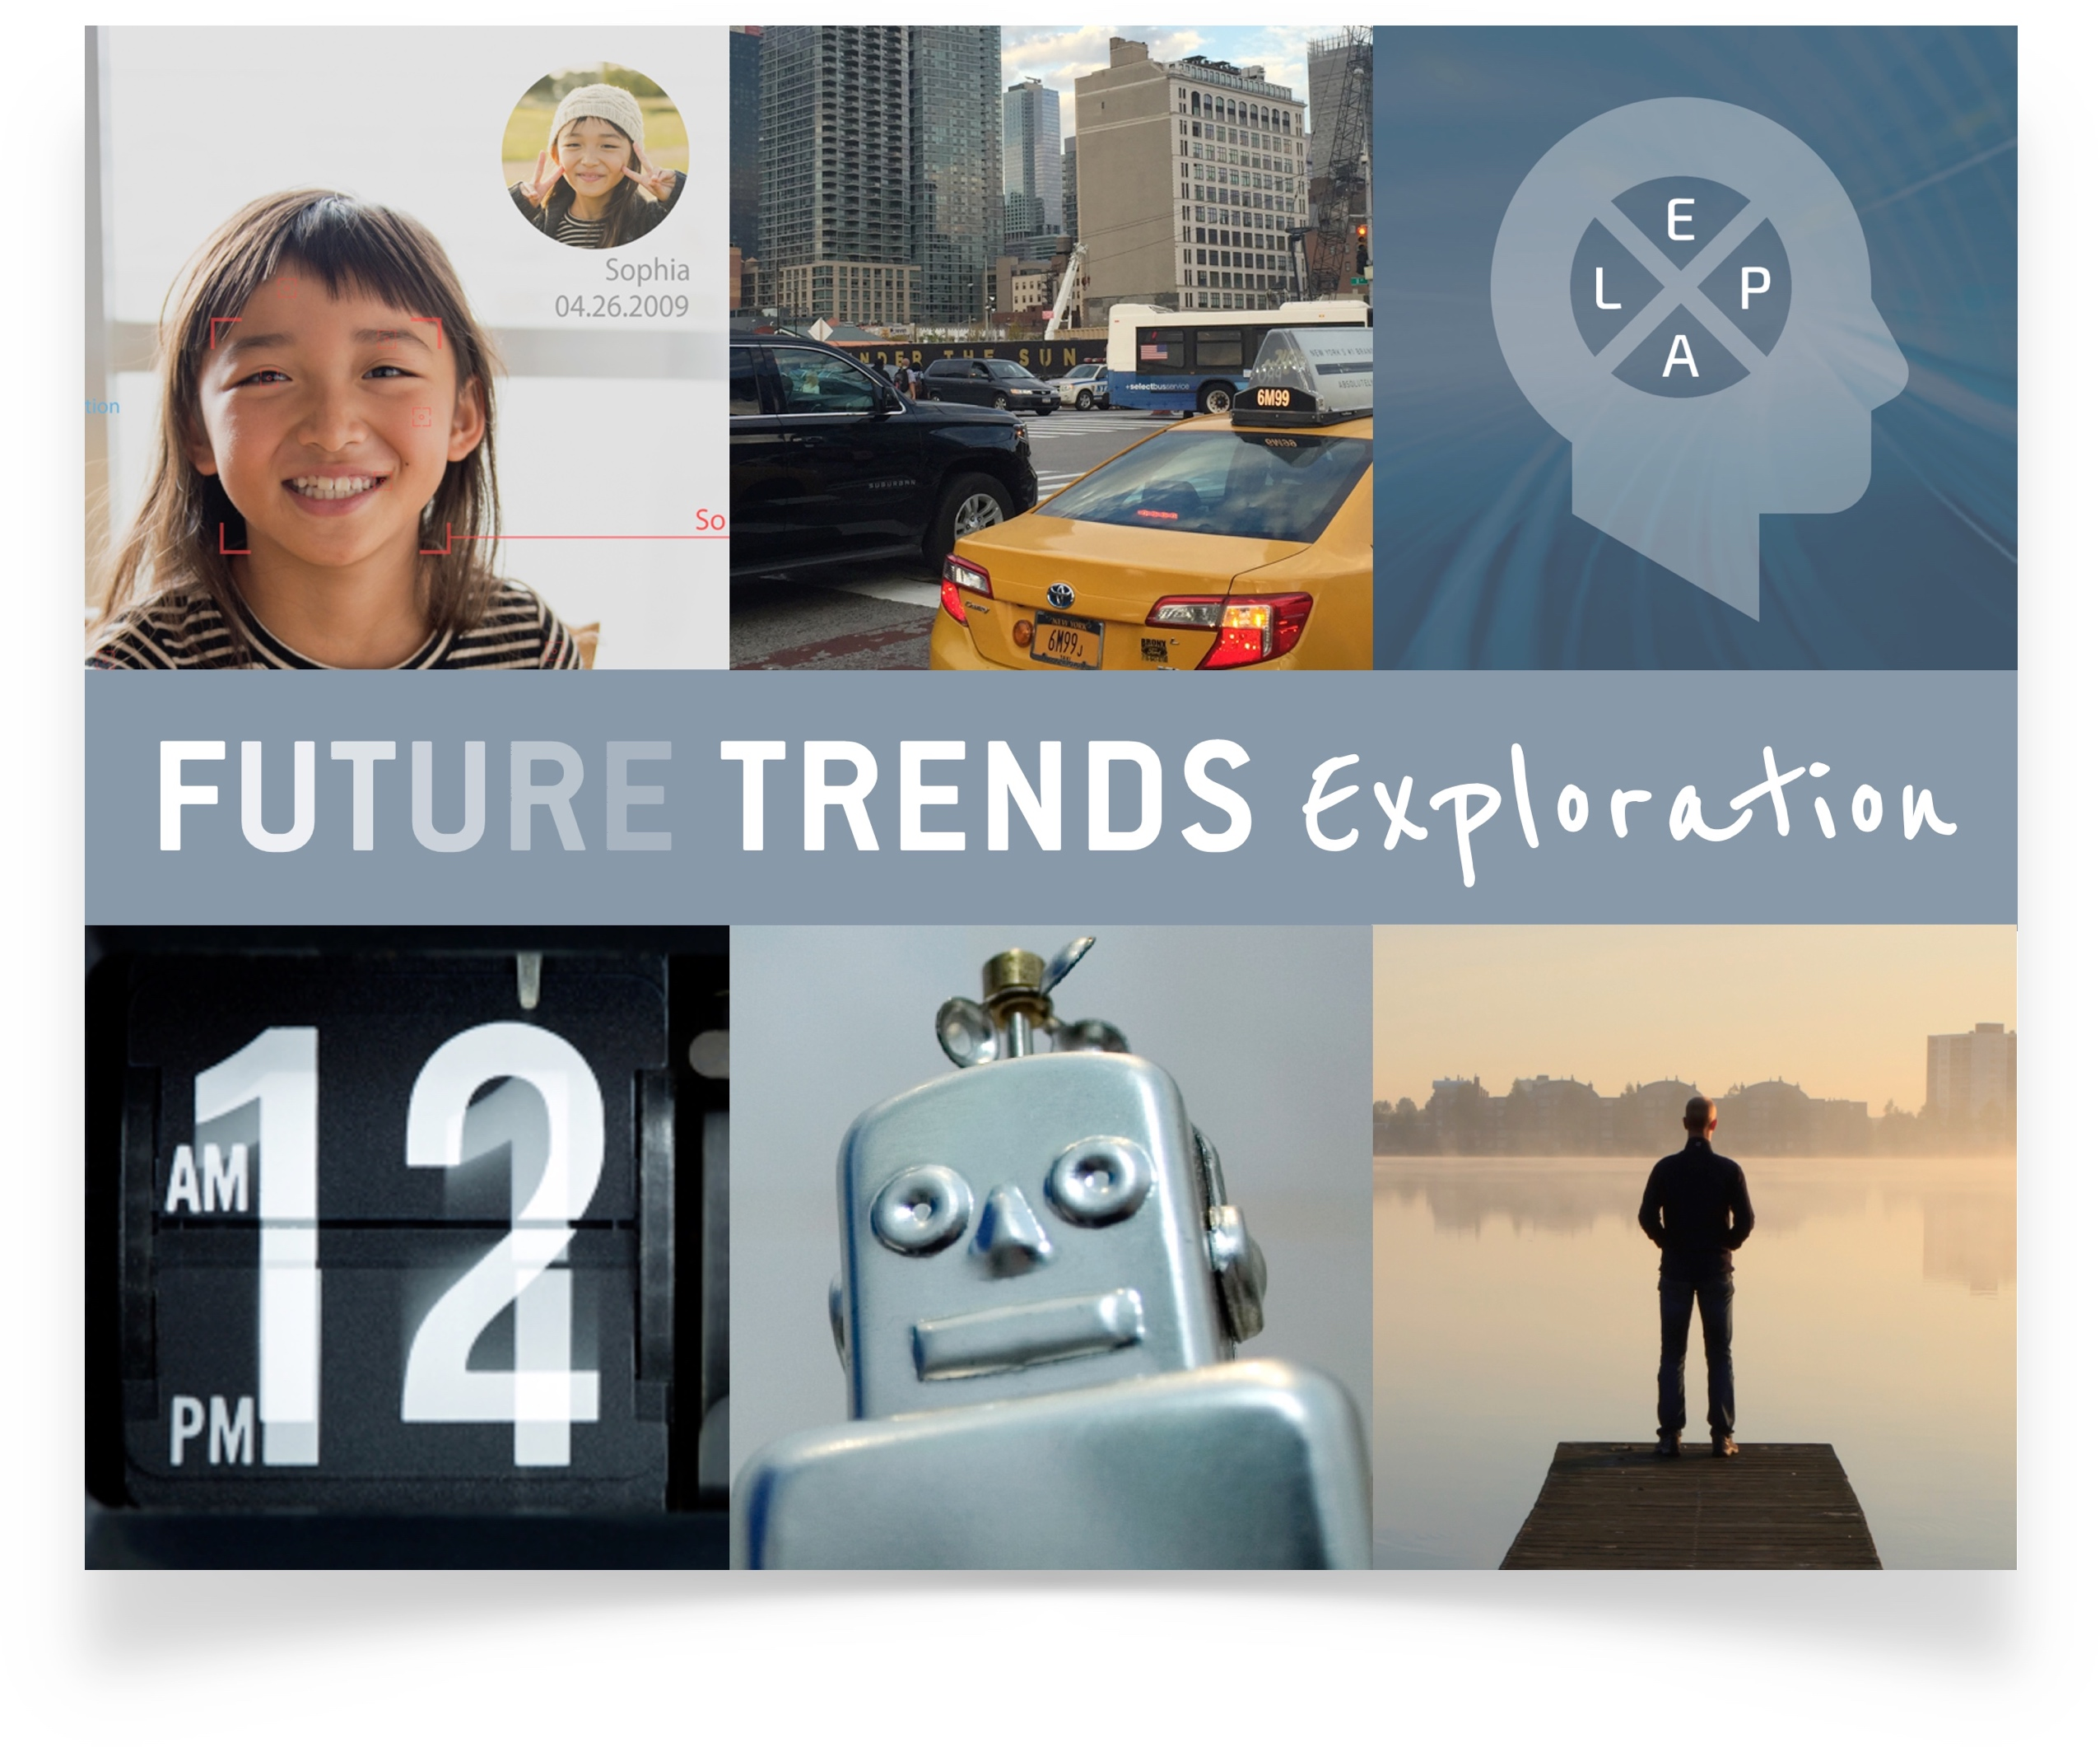 Future Trends Exploration